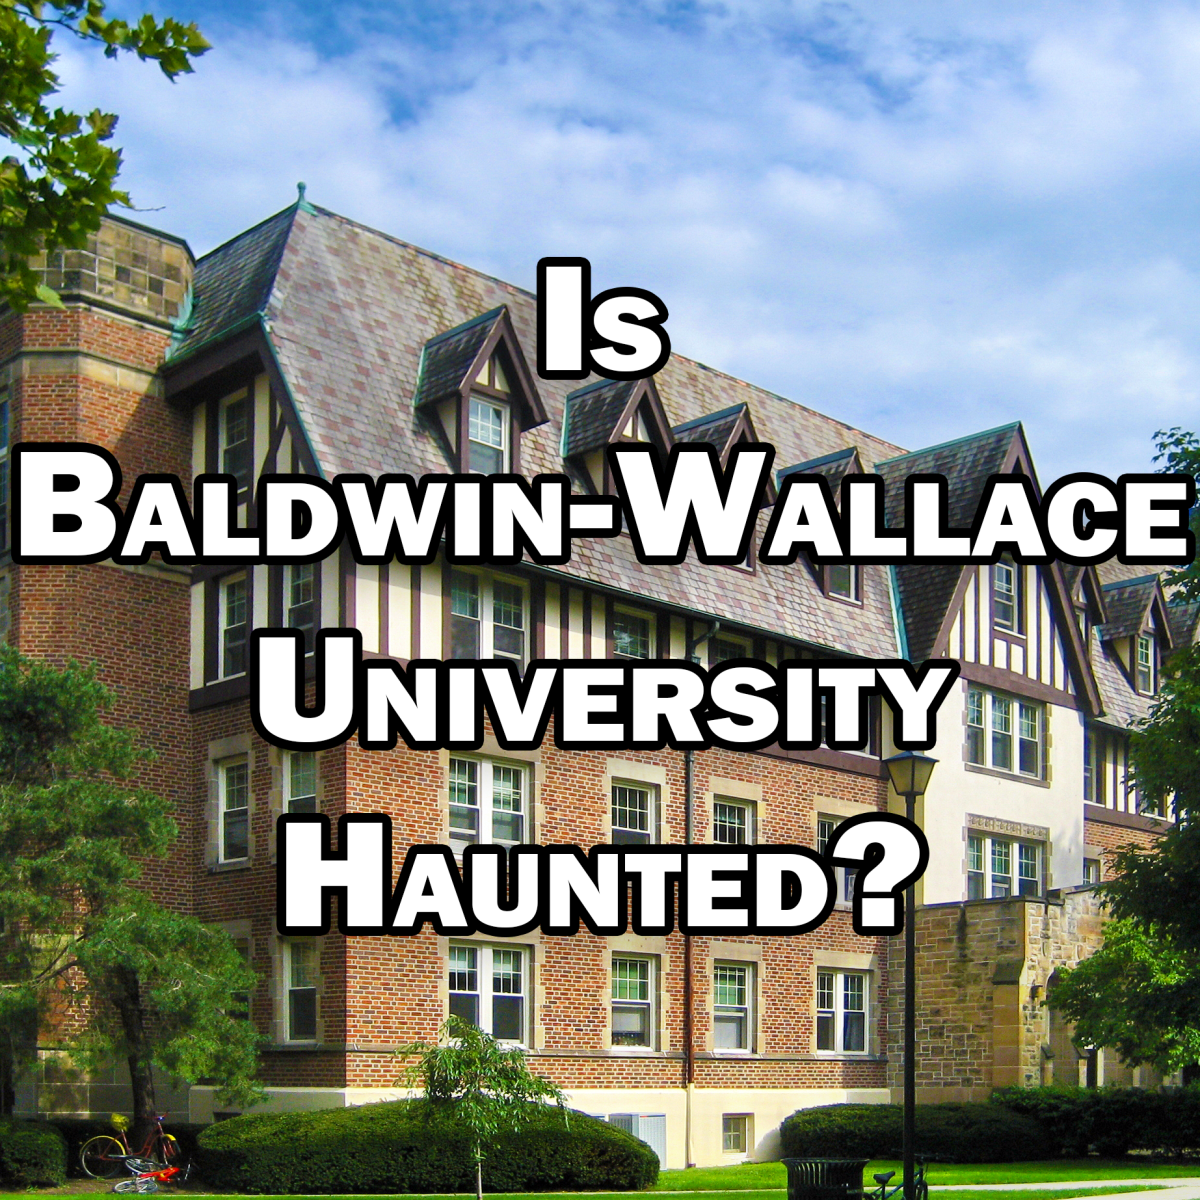 Could Baldwin-Wallace University be haunted? Many students and Berea residents have reported paranormal happenings and ghost sightings in and around the BW campus.